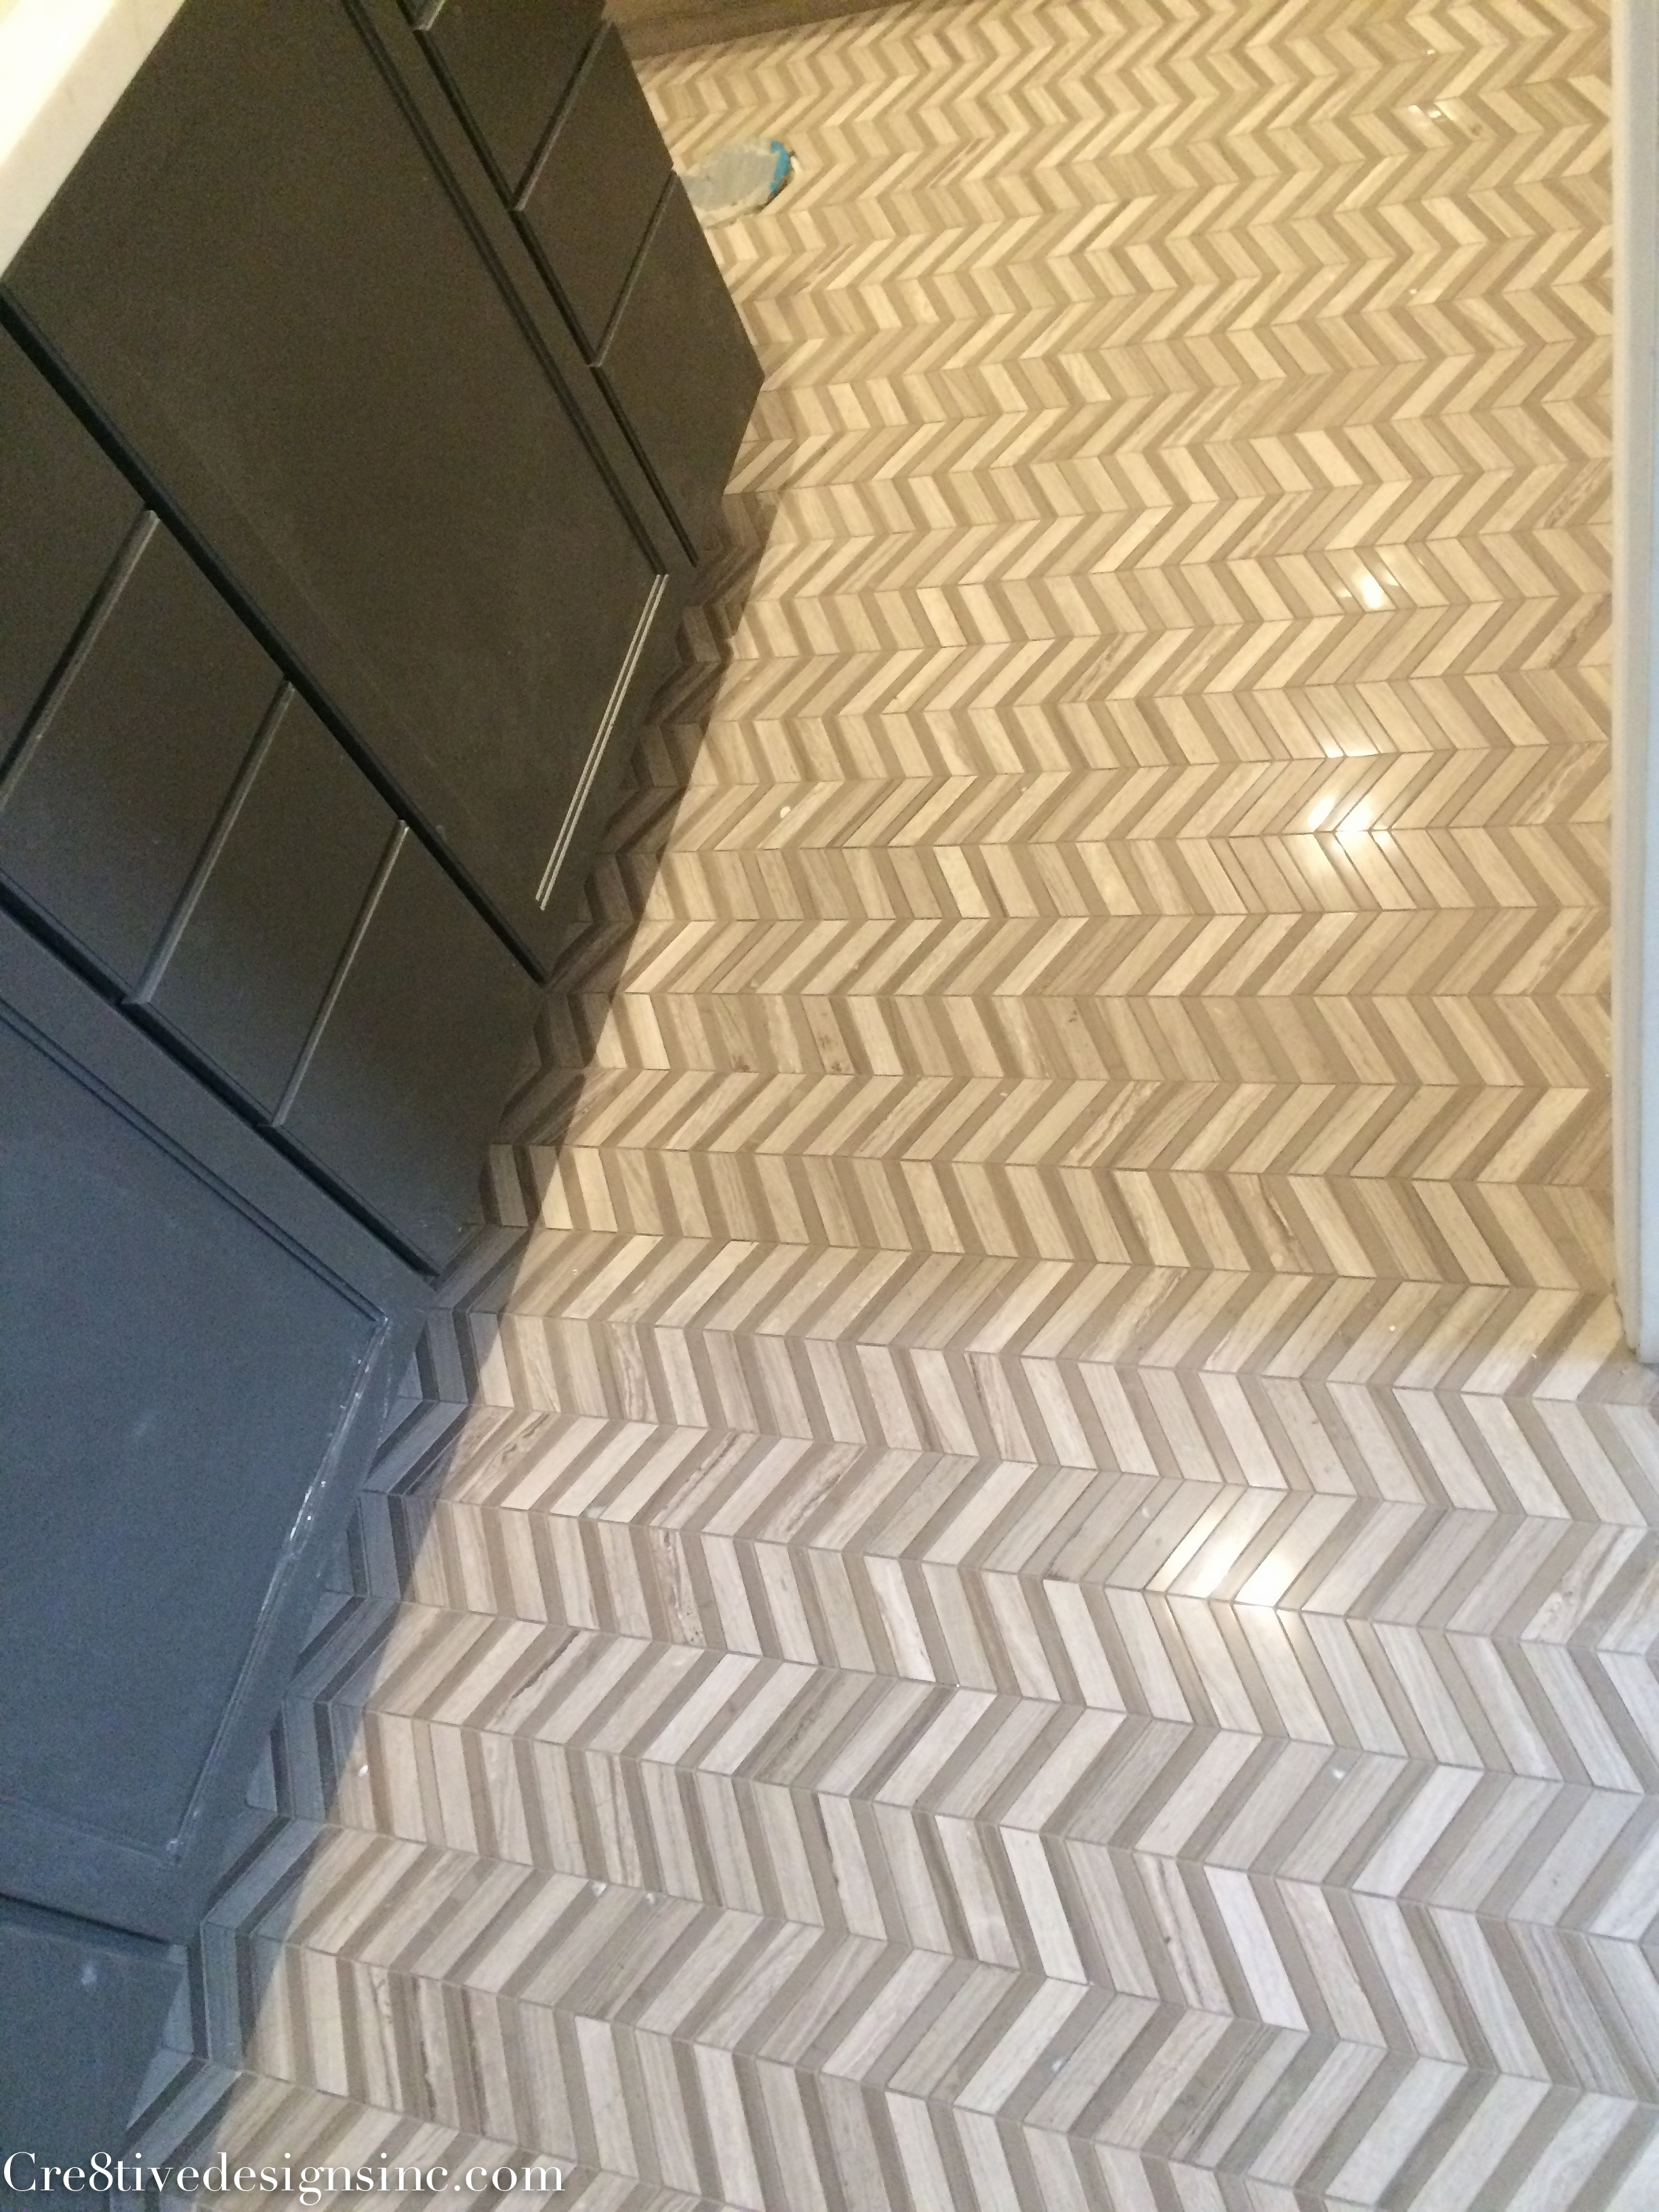 When tile goes wrong cre8tive designs inc for Bathroom floor patterns